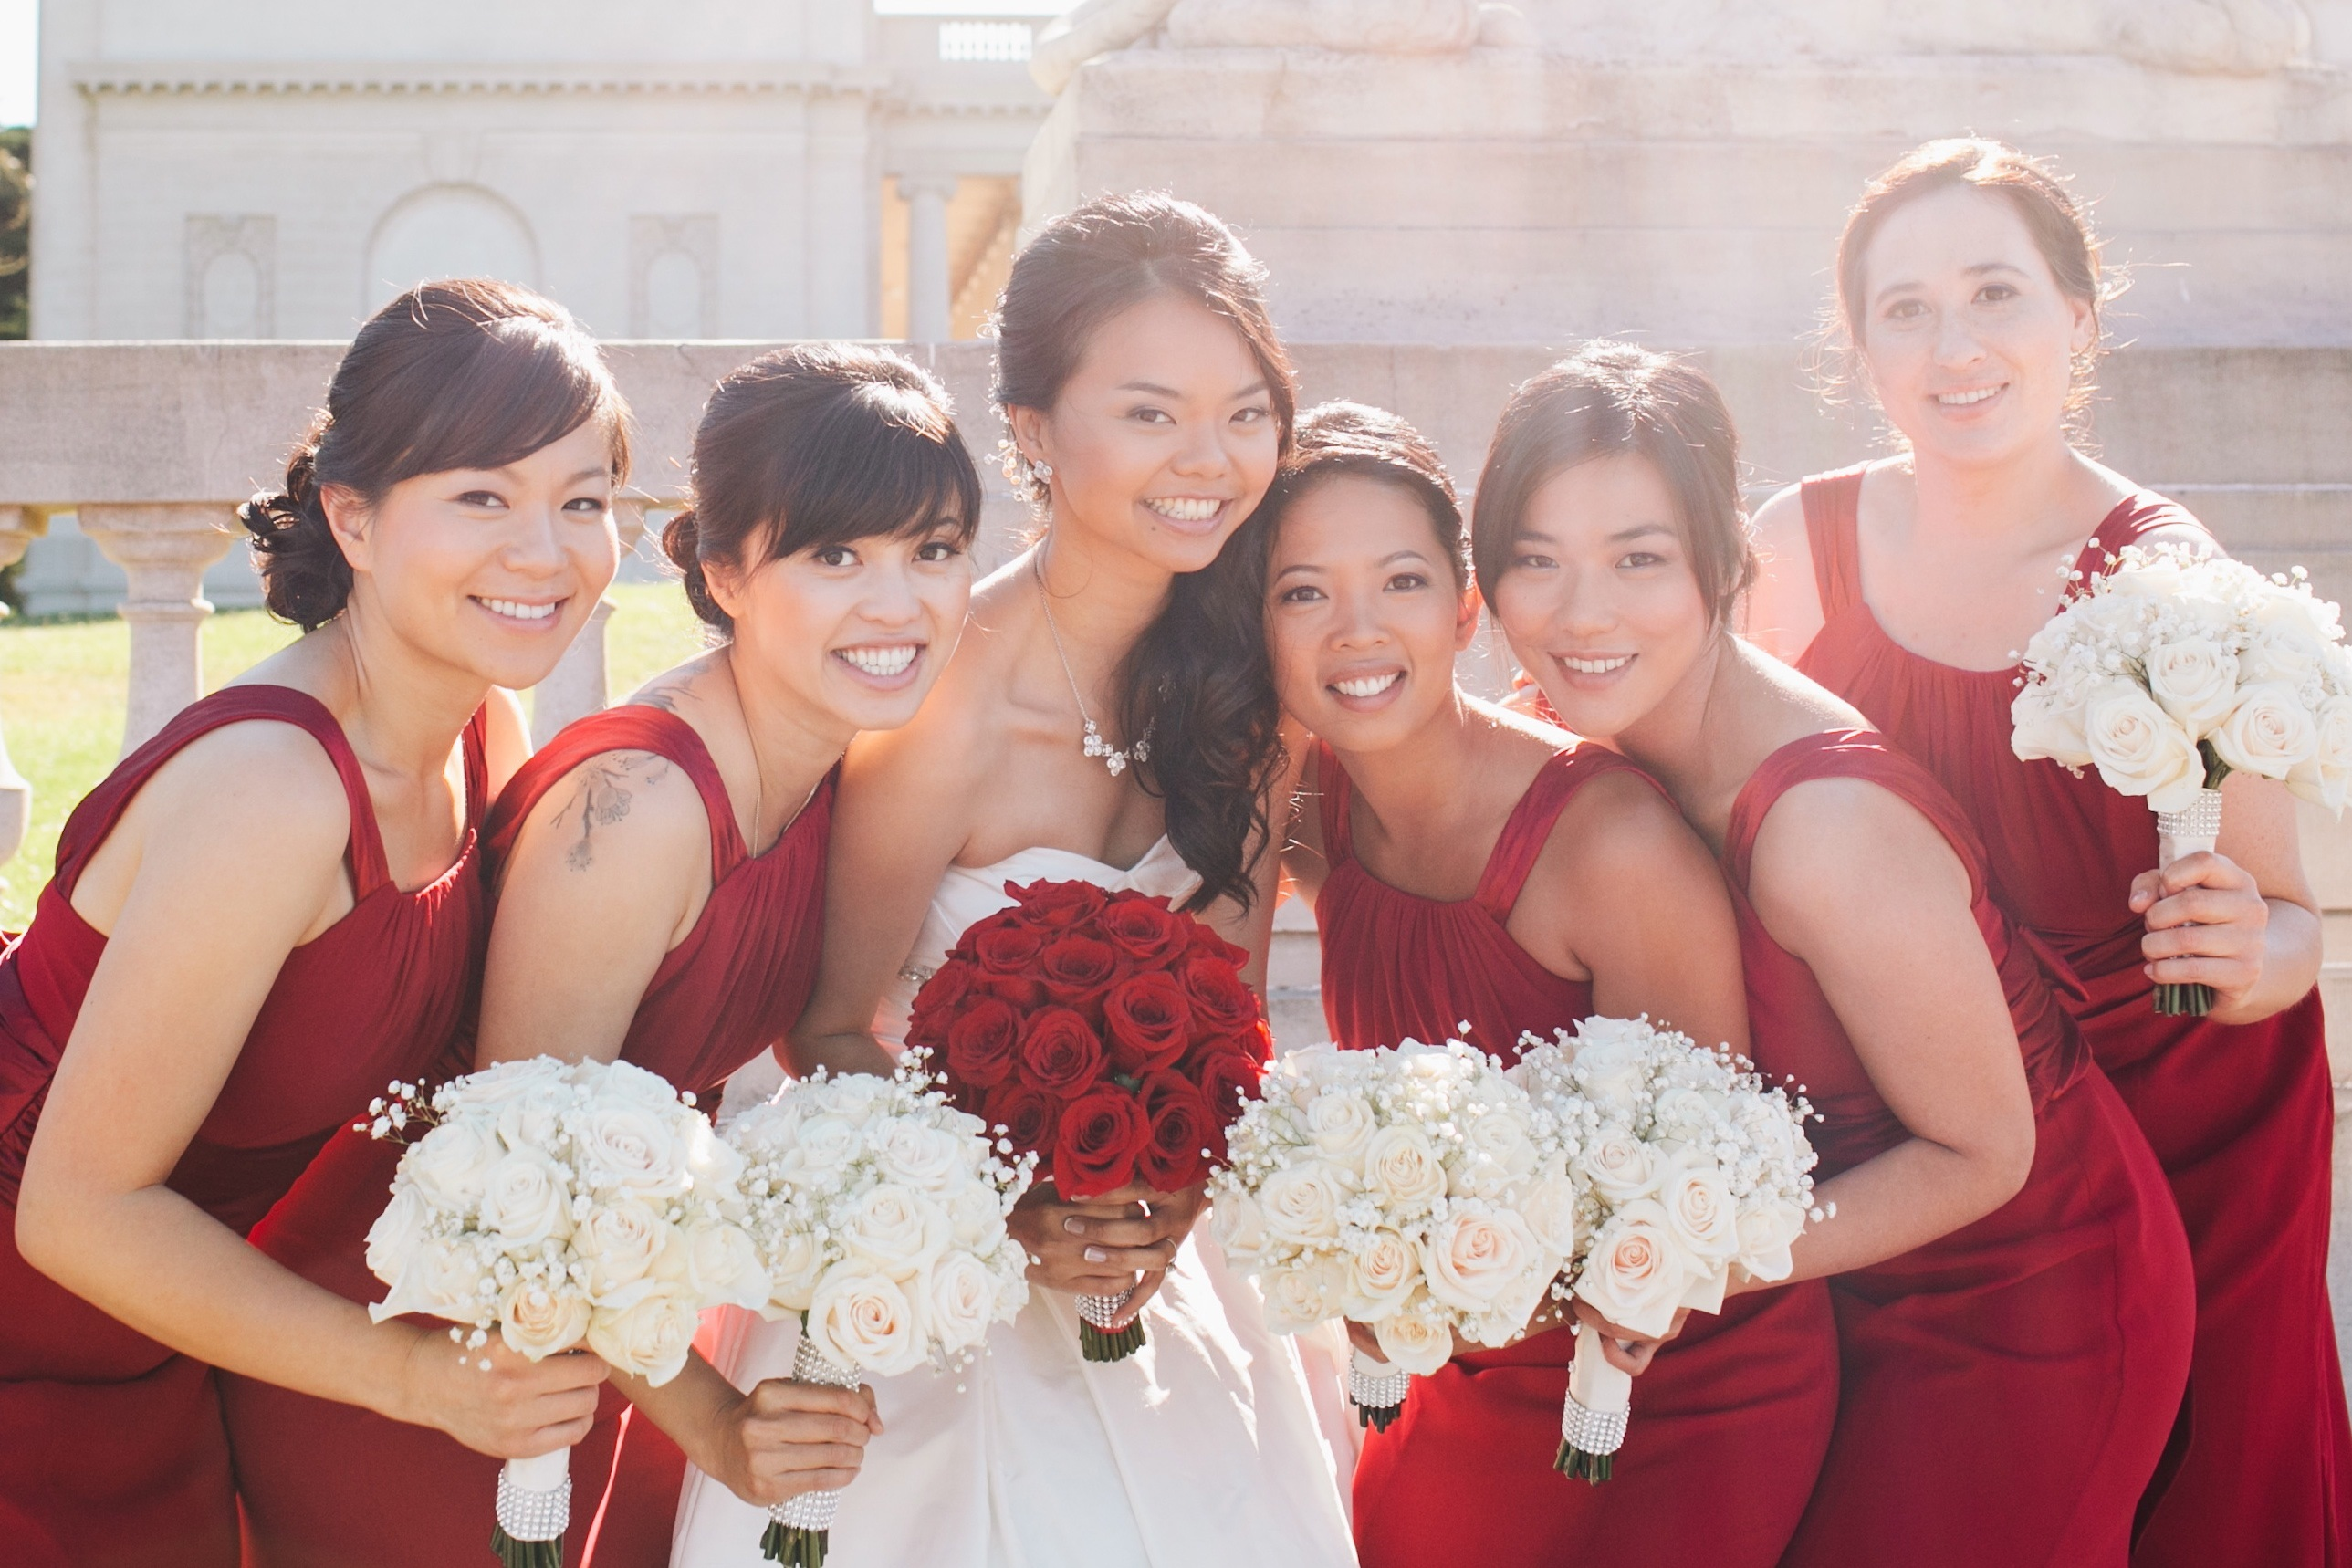 Bridesmaids, Bridesmaids Dresses, Fashion, white, red, Roses, Bouquet, Dresses, Babys, Breath, Wendy jason